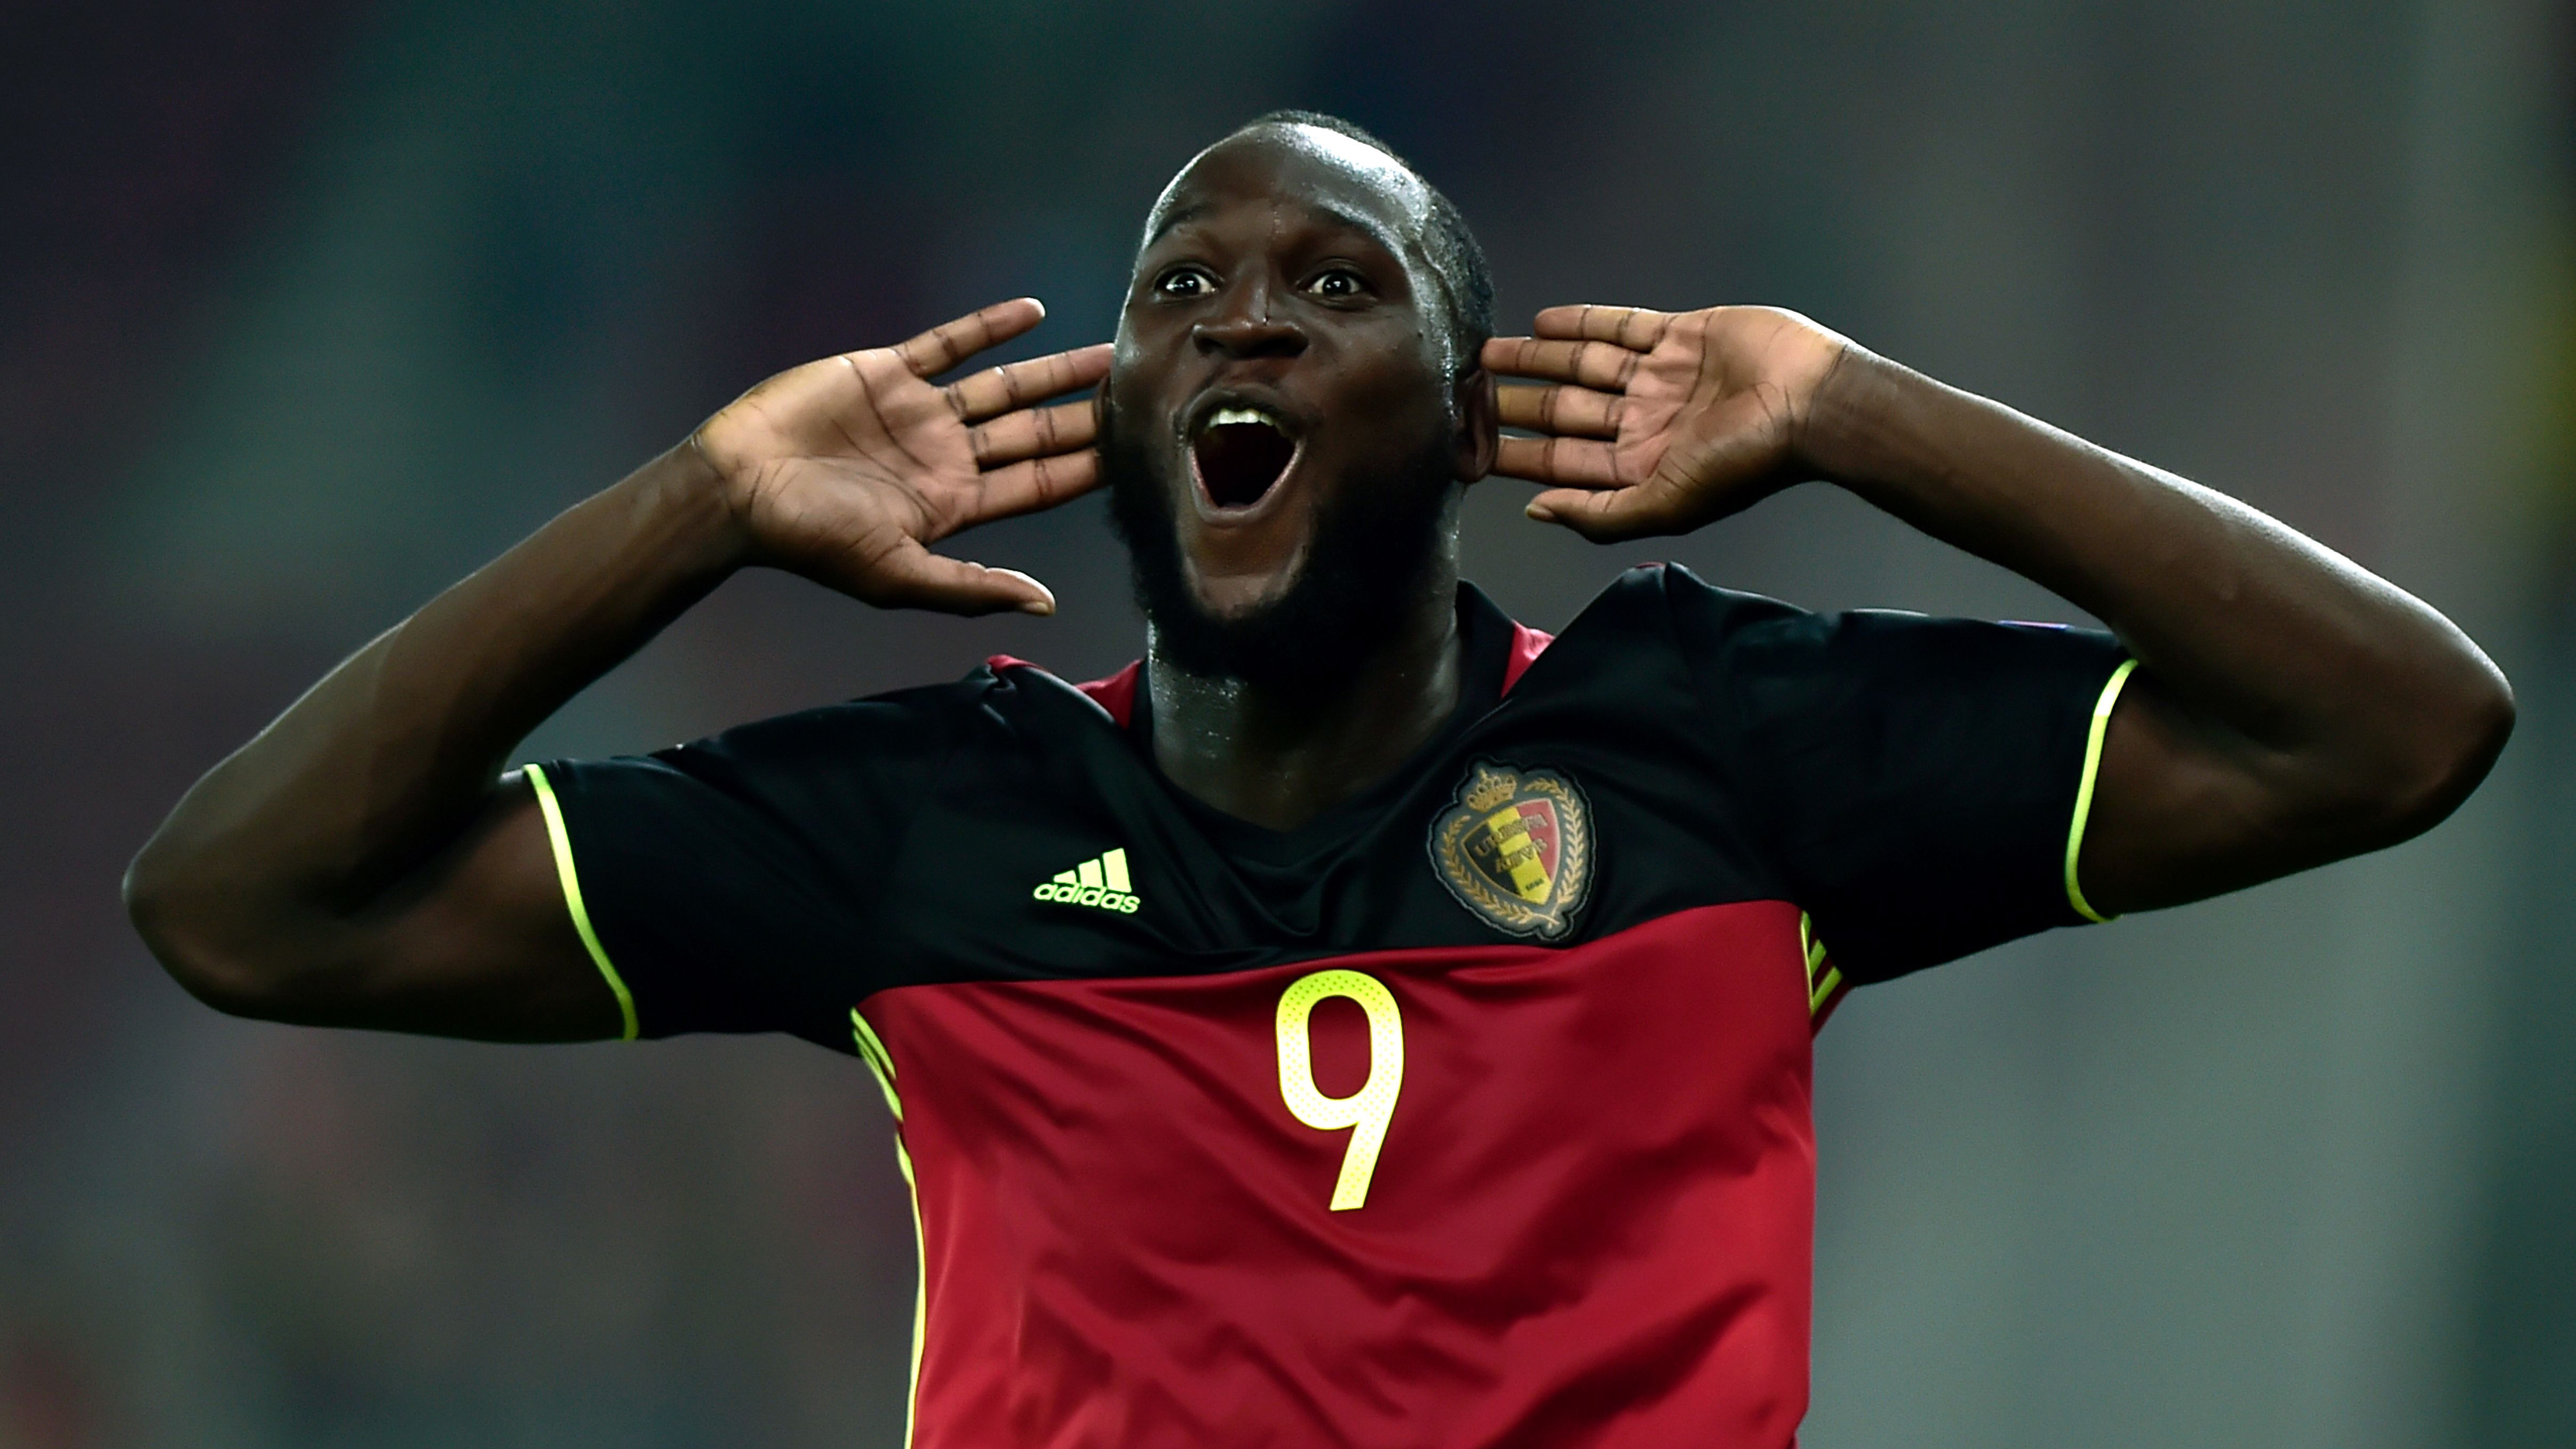 Belgium Completes Undefeated Qualification Campaign to Secure 2018 World Cup Spot